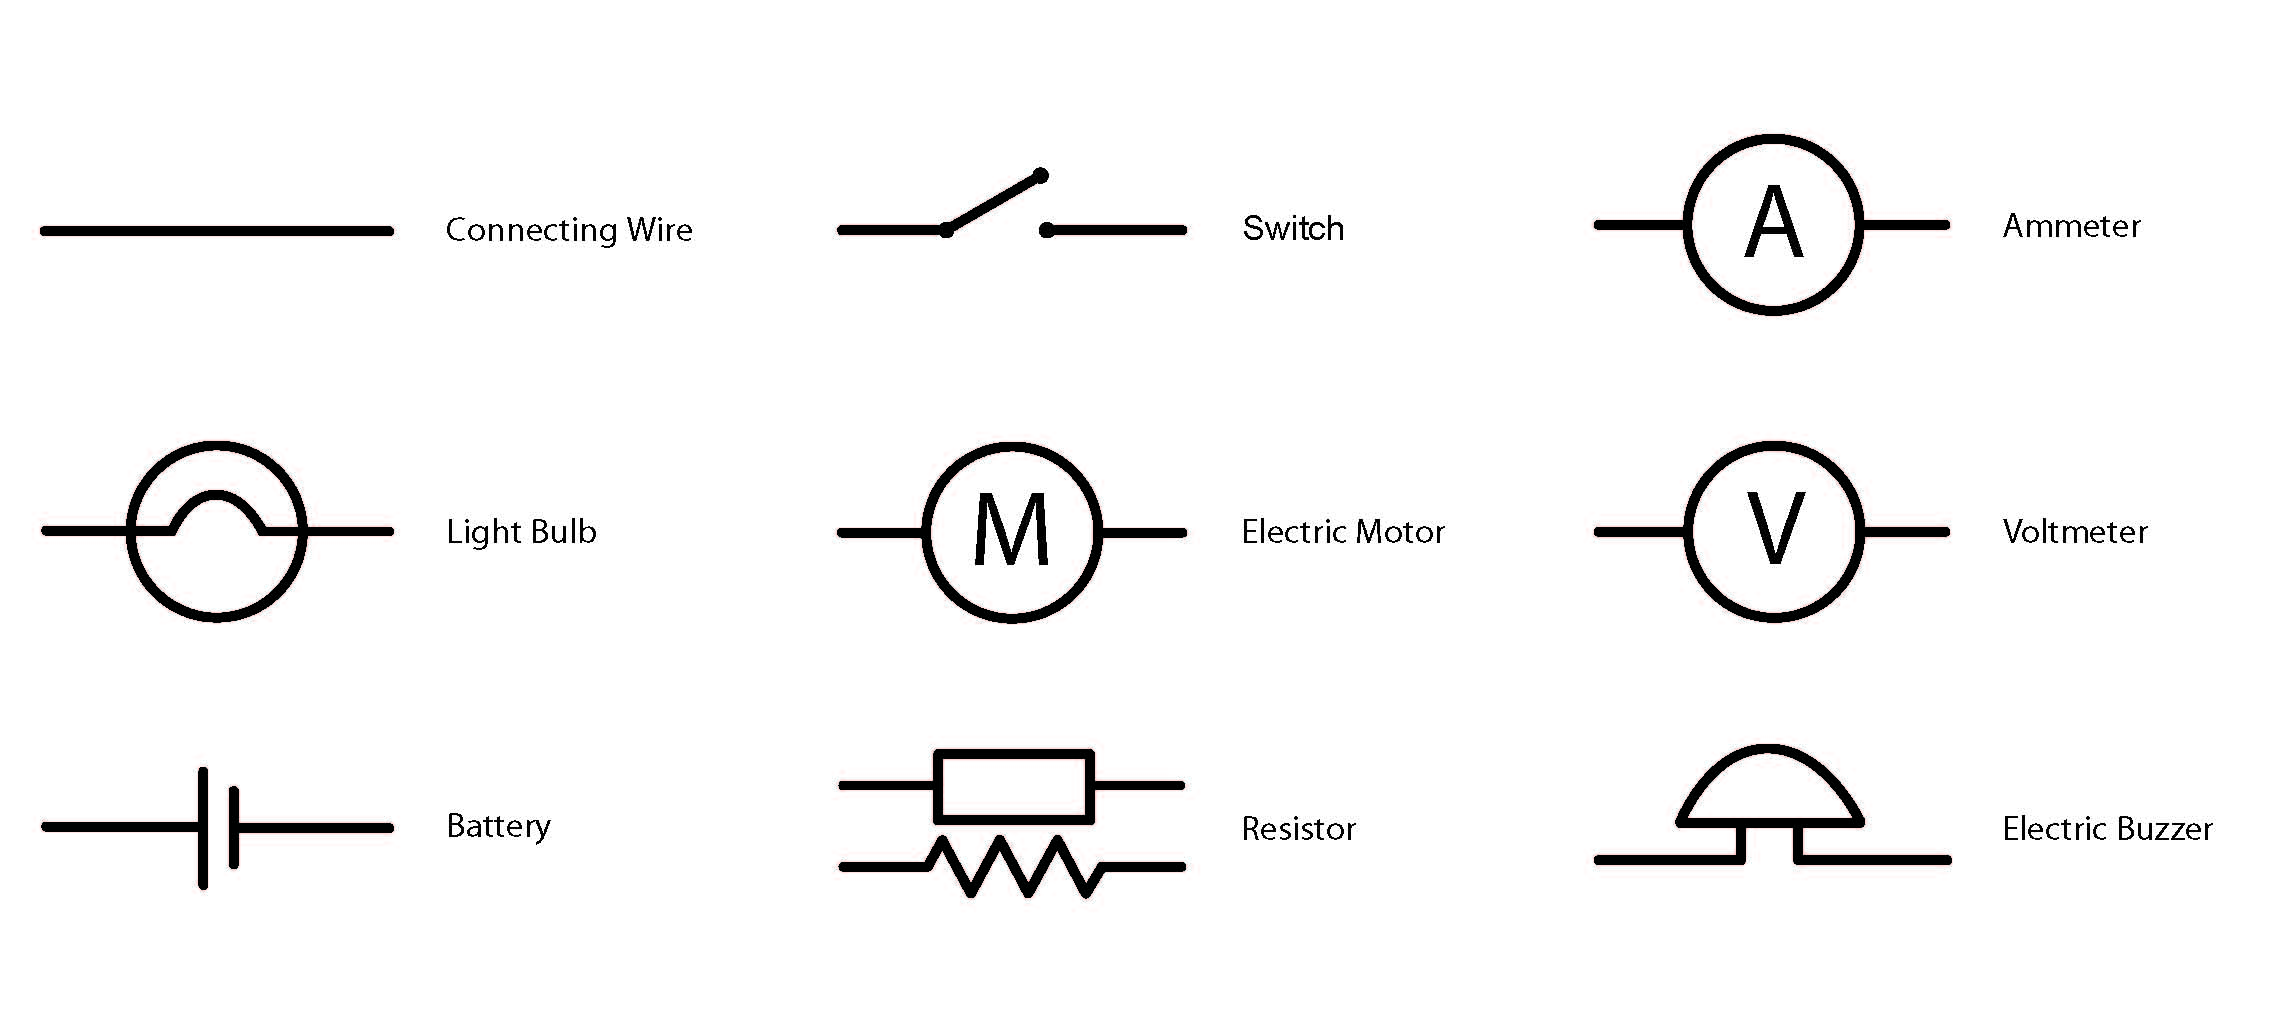 Speaker Wiring Diagram Series Parallel furthermore Leeson Motor Wiring Schematic Baldor Three Phase Diagram 147097d1439491957 Help Needed 5 Hp Cutler Hammer Drum Switch Single Sw  resize6652c434 Diagram   Wiring Diagram moreover 12v Relay Switch Wiring Diagram as well 230v 3 Phase Motor Wiring Diagram moreover Circuits Circuit Symbols. on 3 phase motor wiring diagrams